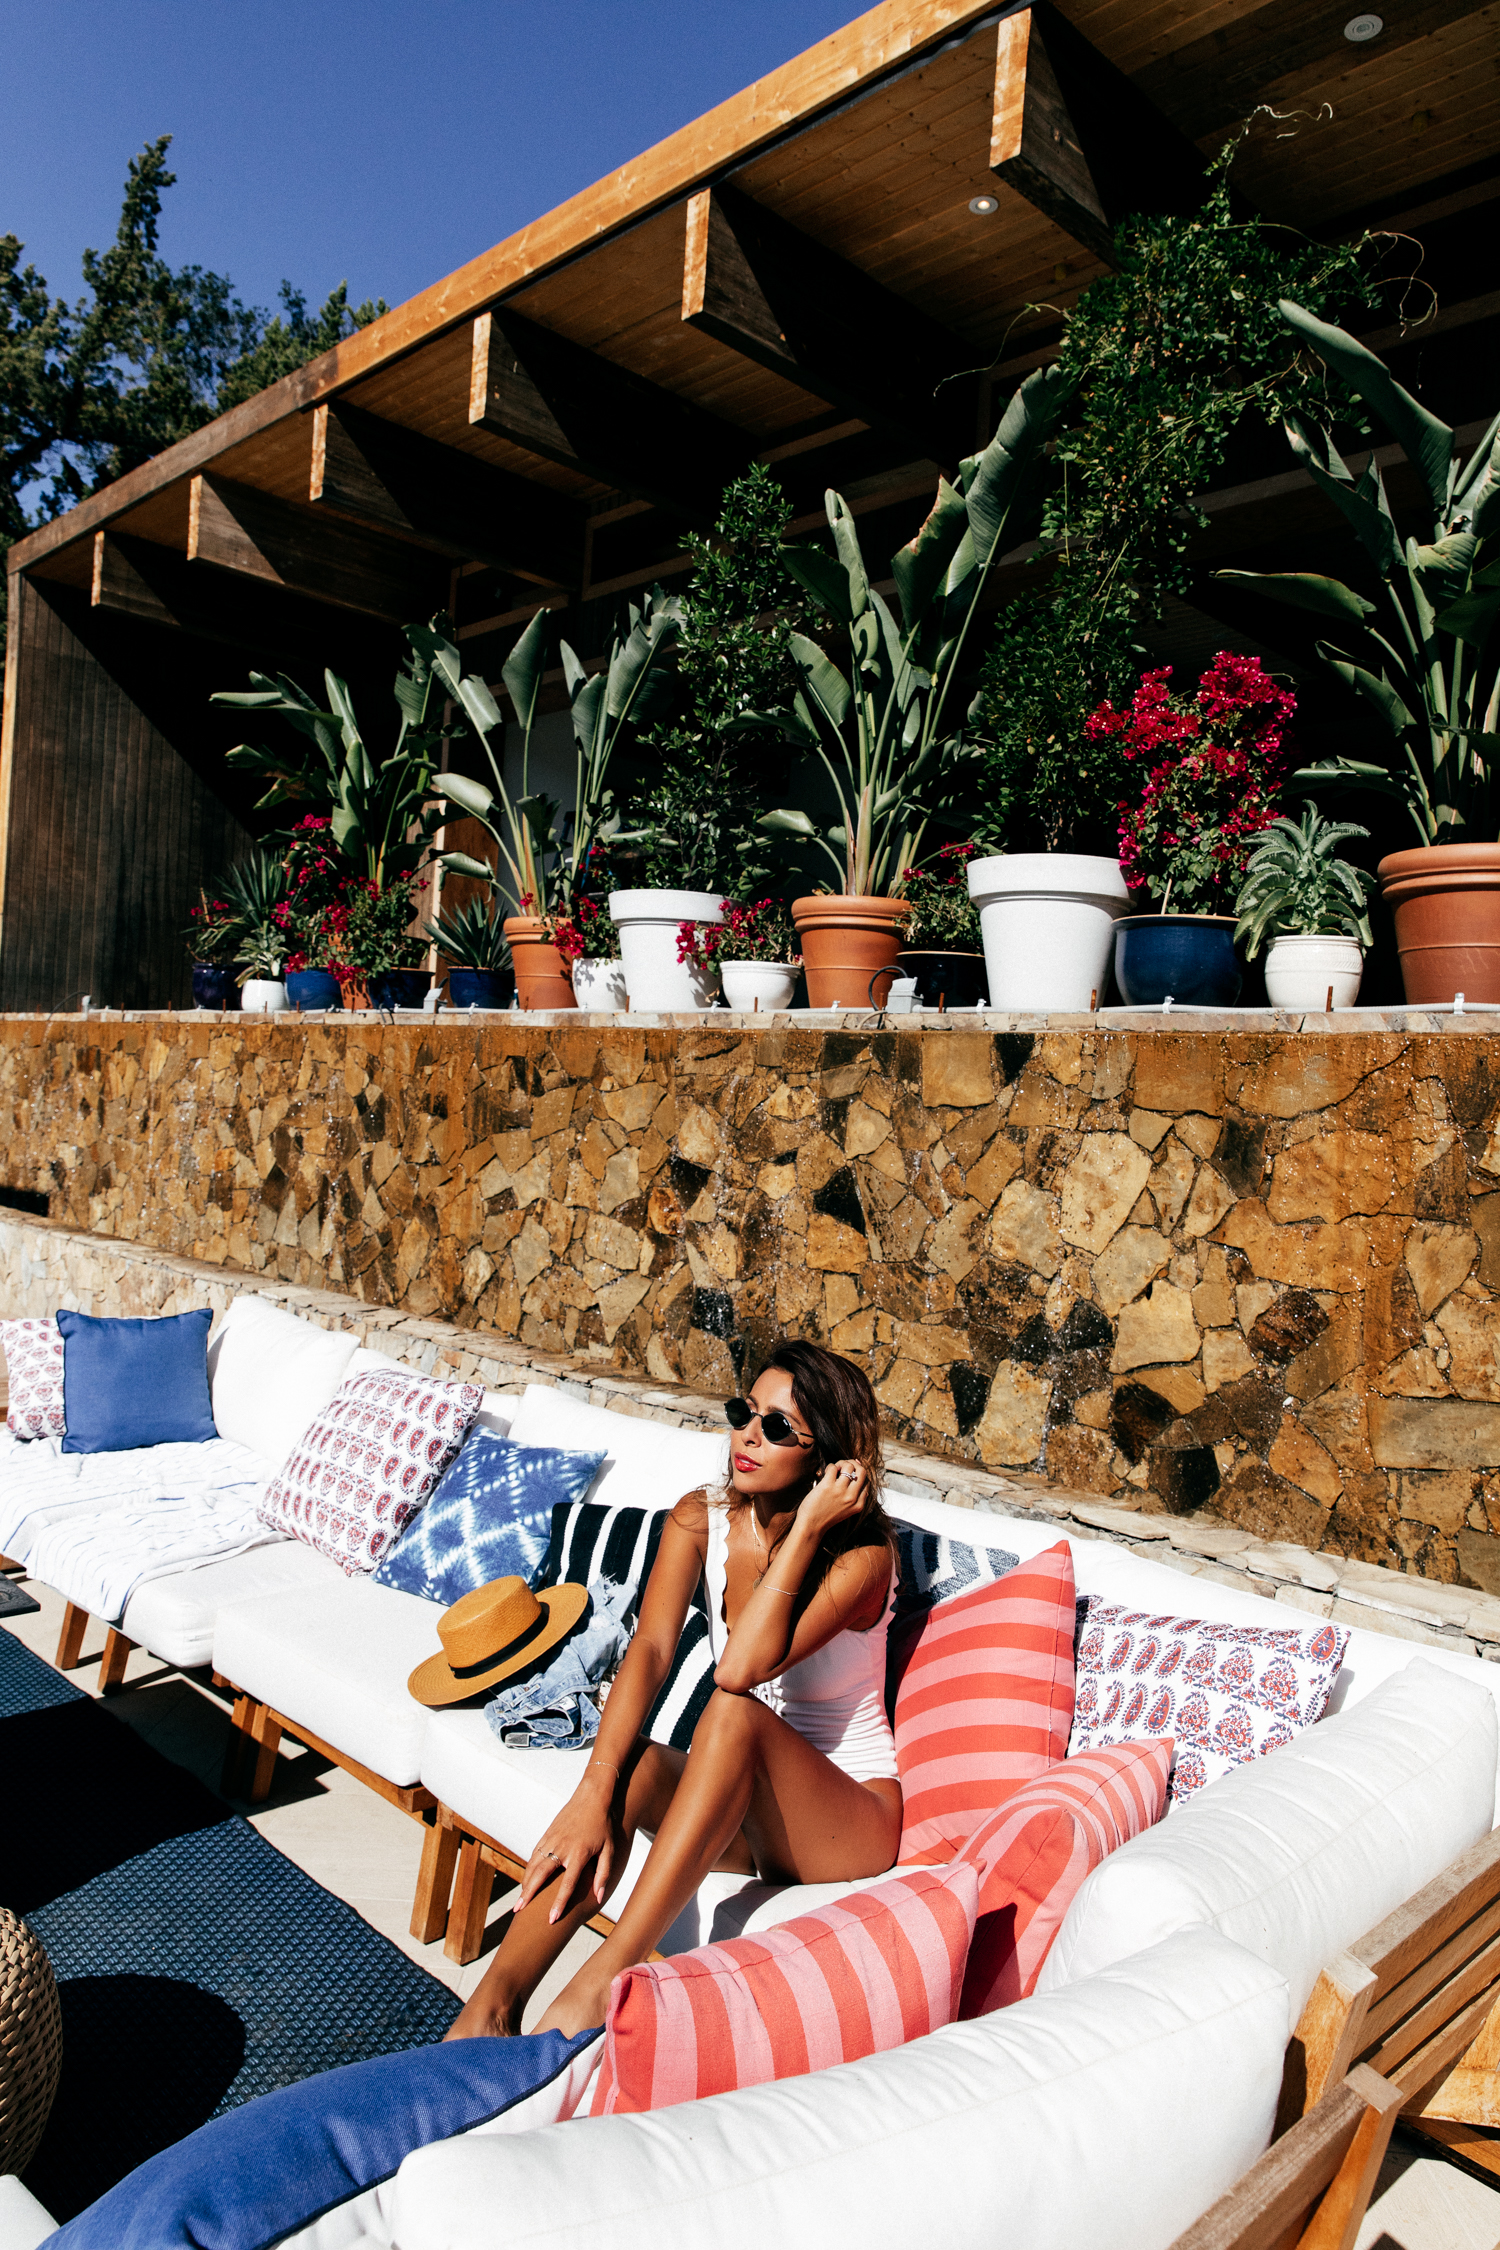 Where to stay in Malibu: Calamigos Guest Ranch